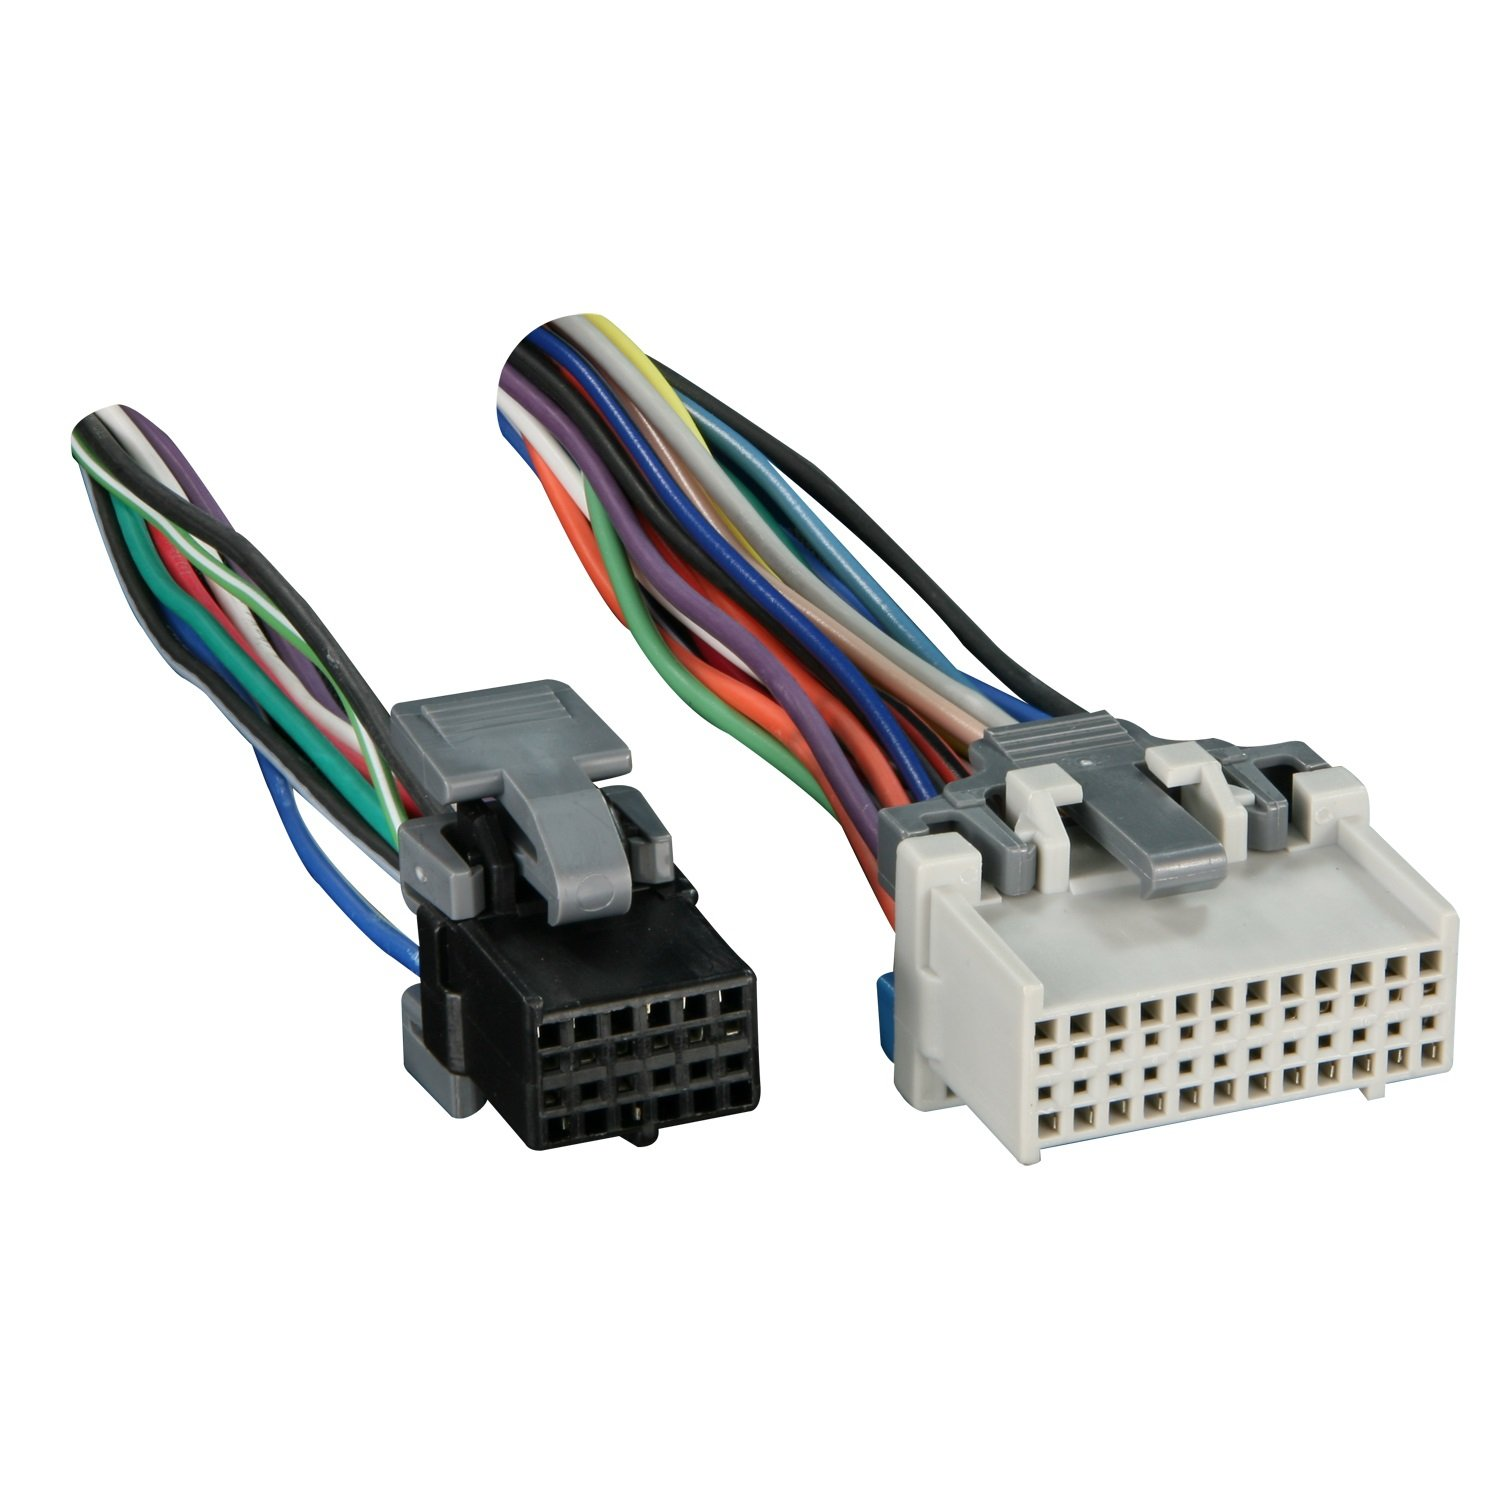 711log4bdML._SL1500_ amazon com metra turbowires 71 2003 1 wiring harness car electronics what is a wire harness in a car at readyjetset.co